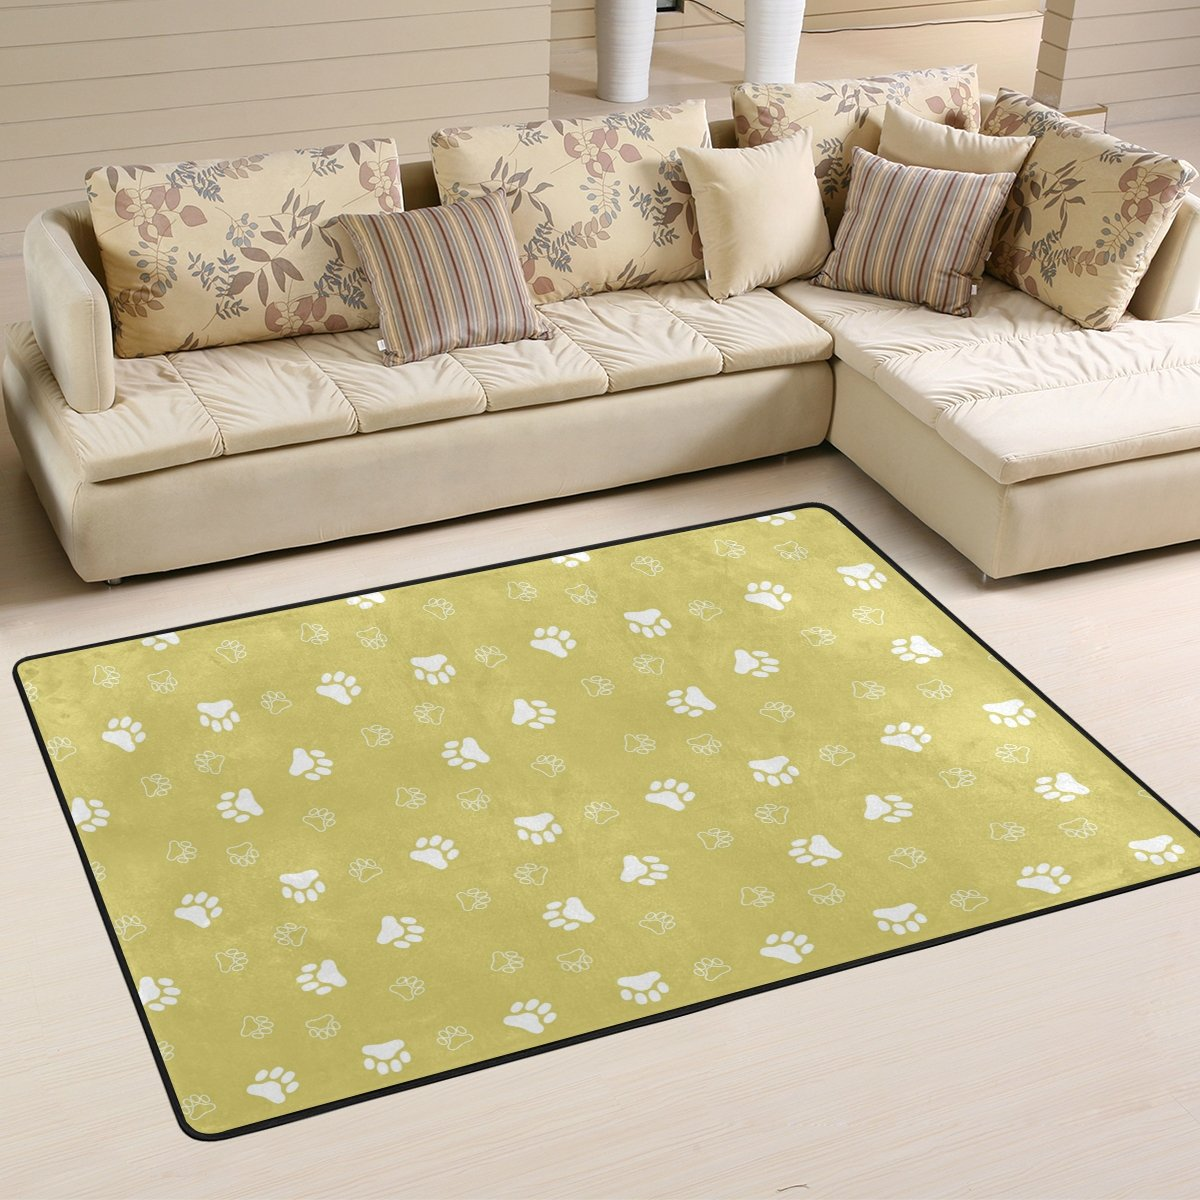 SAVSV 6' x 4' Area Rug Carpet Doormat Lightweight Printed Cute Dog Paw Print Easy to Clean For Living Room Bedroom